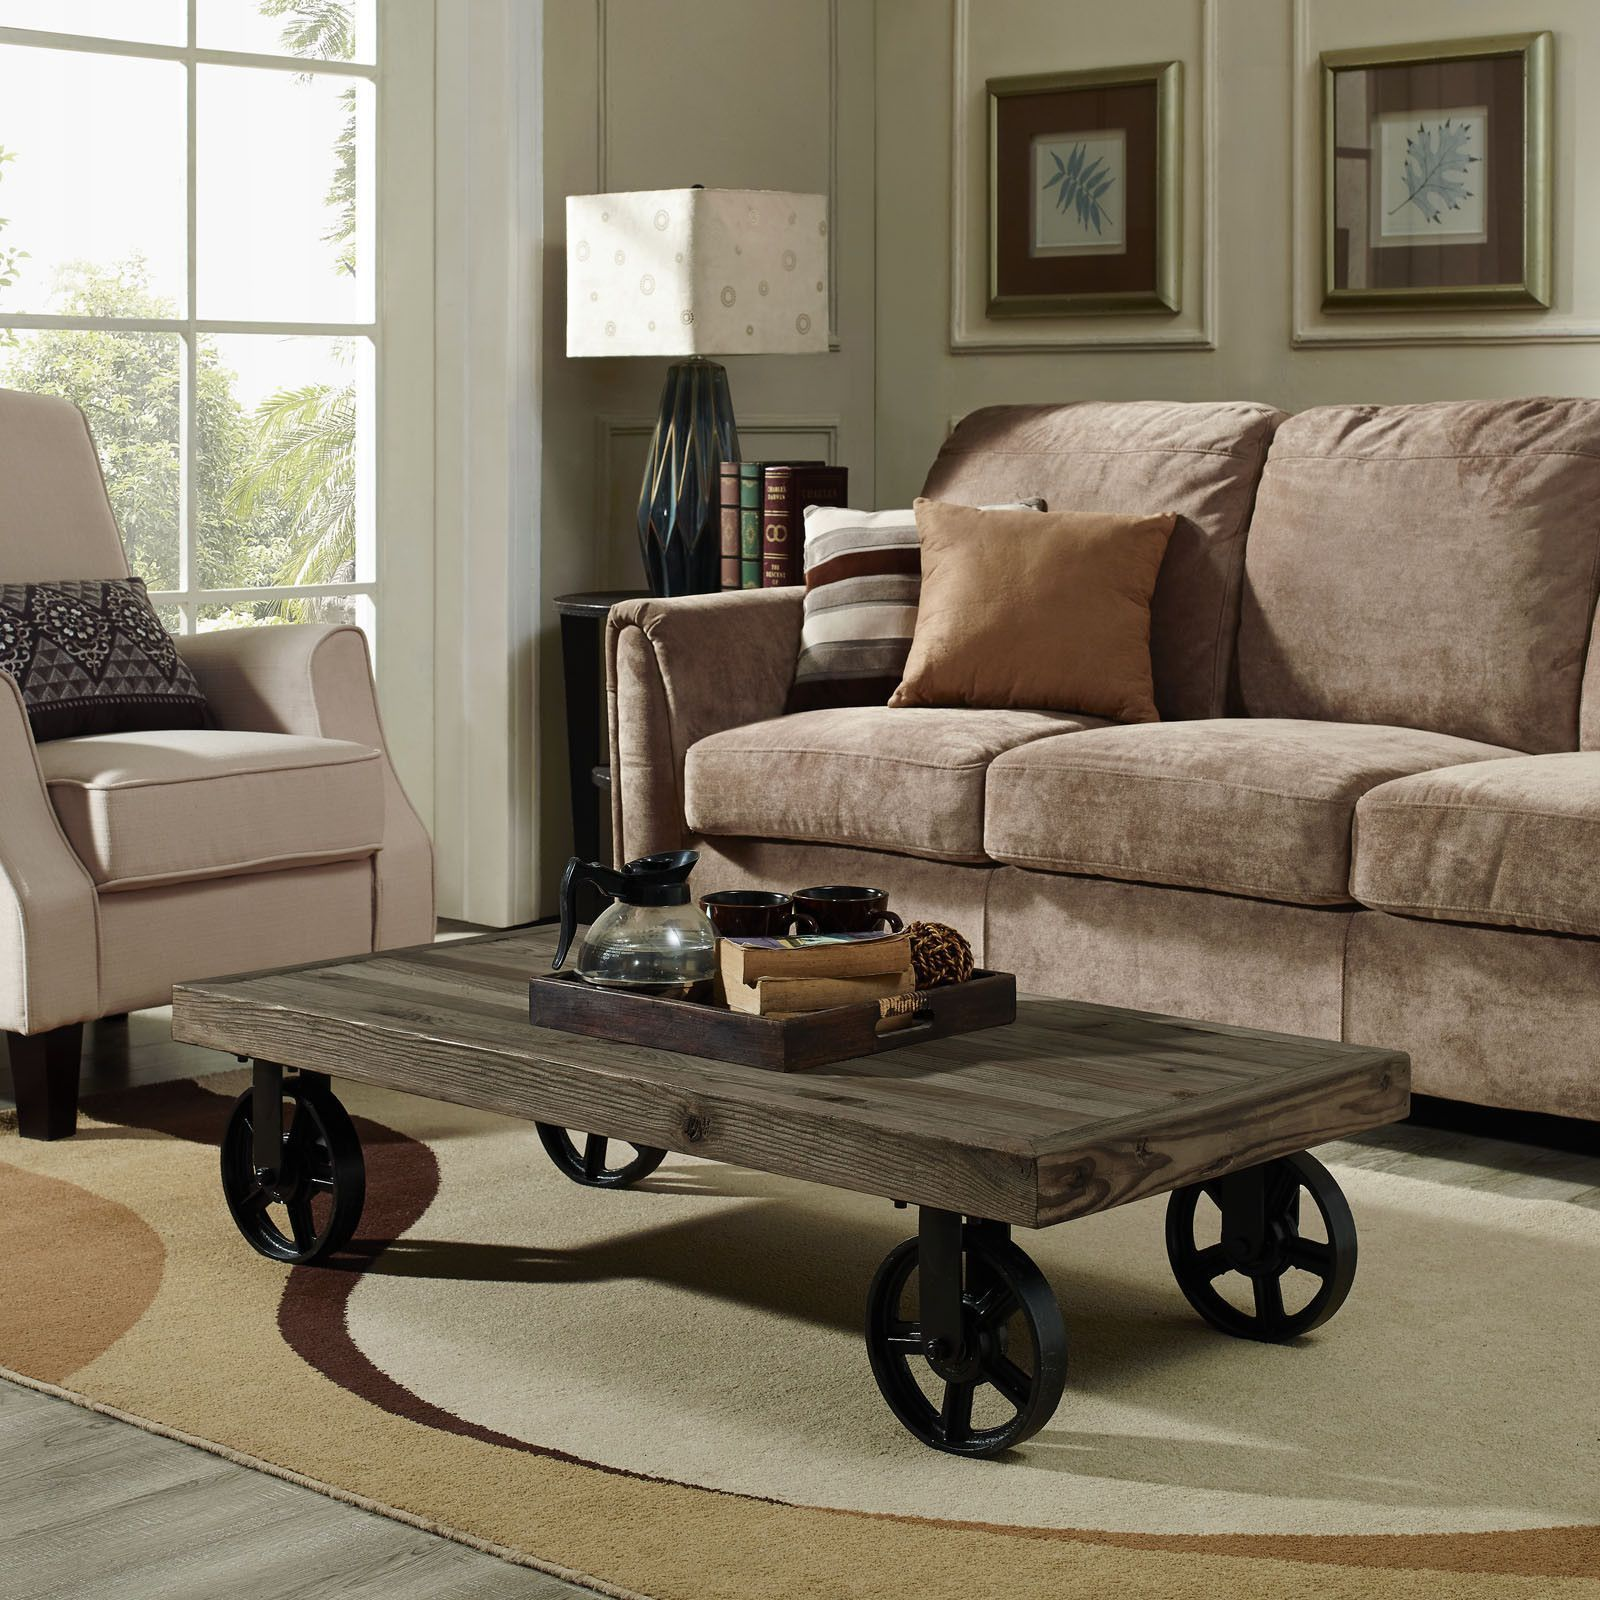 DETAILS Add a classic touch to your living room or reception with this coffee table, showcases a solid pine wood top and four immobile metal wheel casters. P